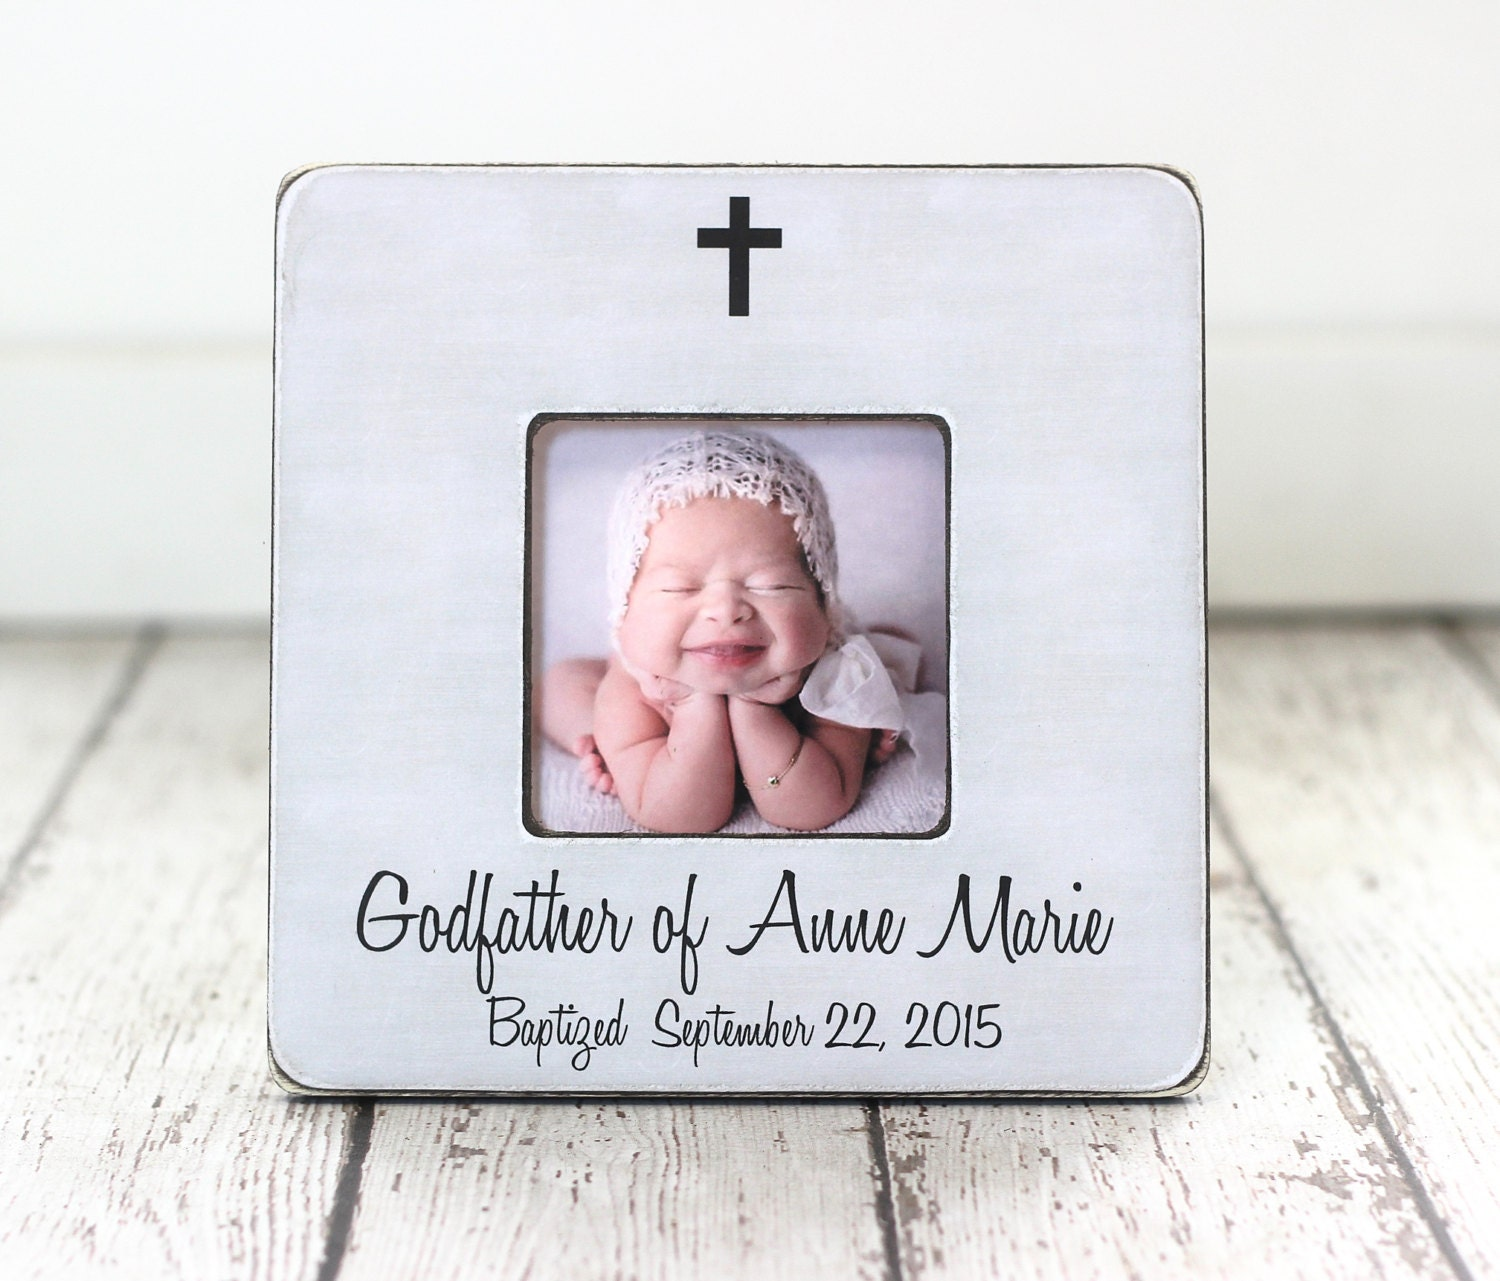 Godfather gift for baptism personalized picture frame description godfather gift for baptism personalized picture frame jeuxipadfo Choice Image